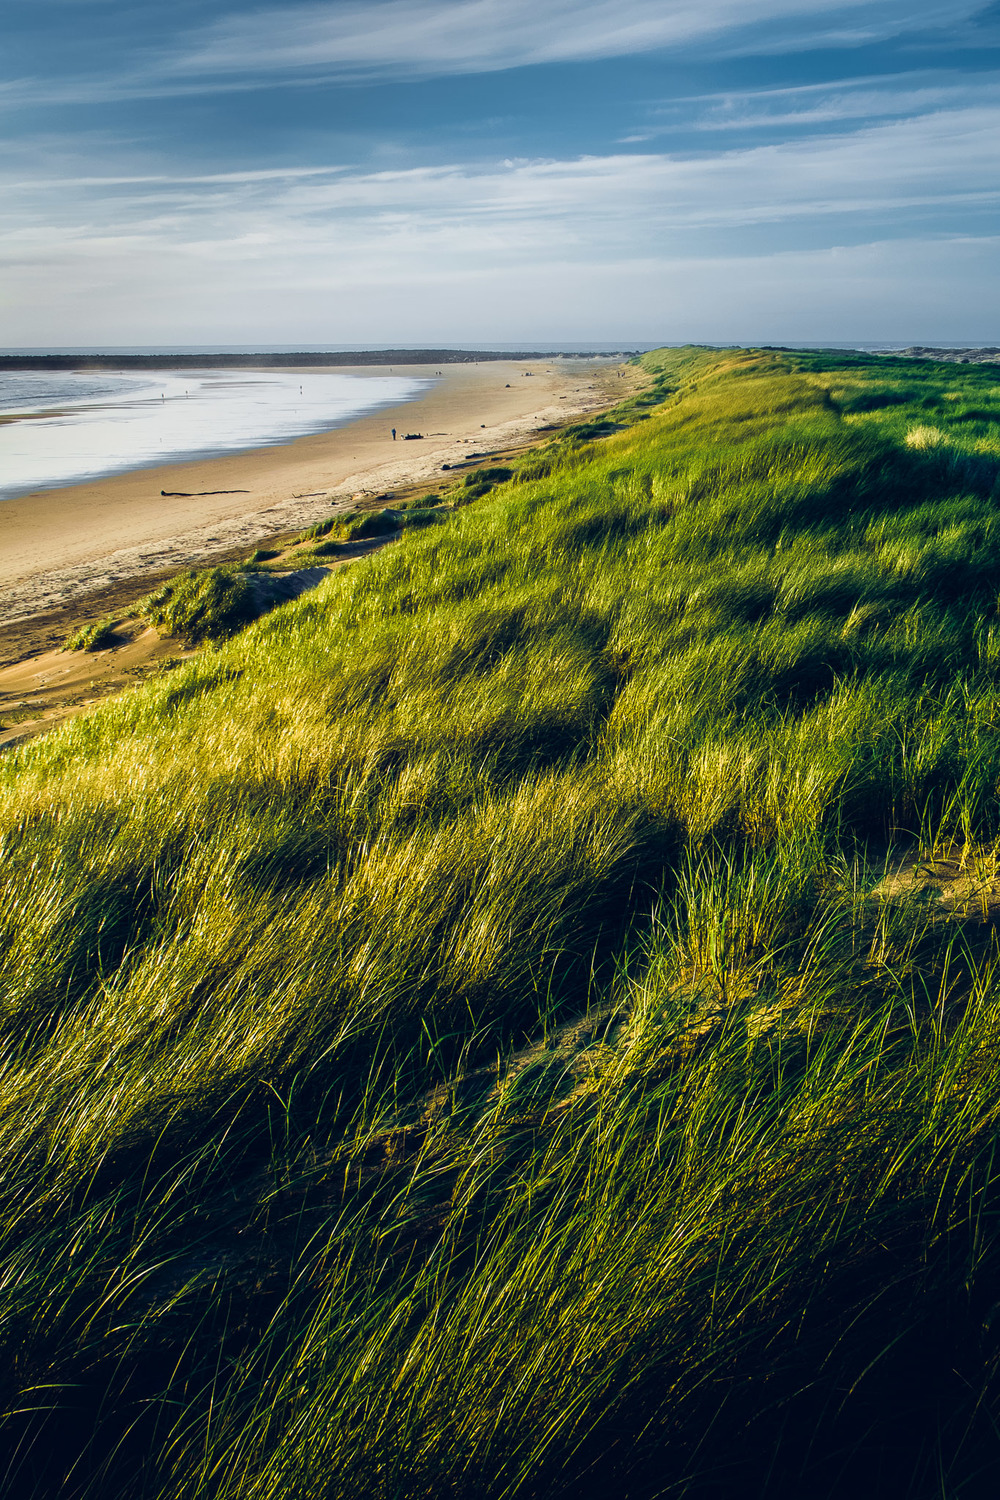 Sunset on the tall grass. South Beach State Park, Newport, Oregon. Fujifilm XE-1, XF18-55mm @ 18mm, ISO 200, f/11, 1/125.